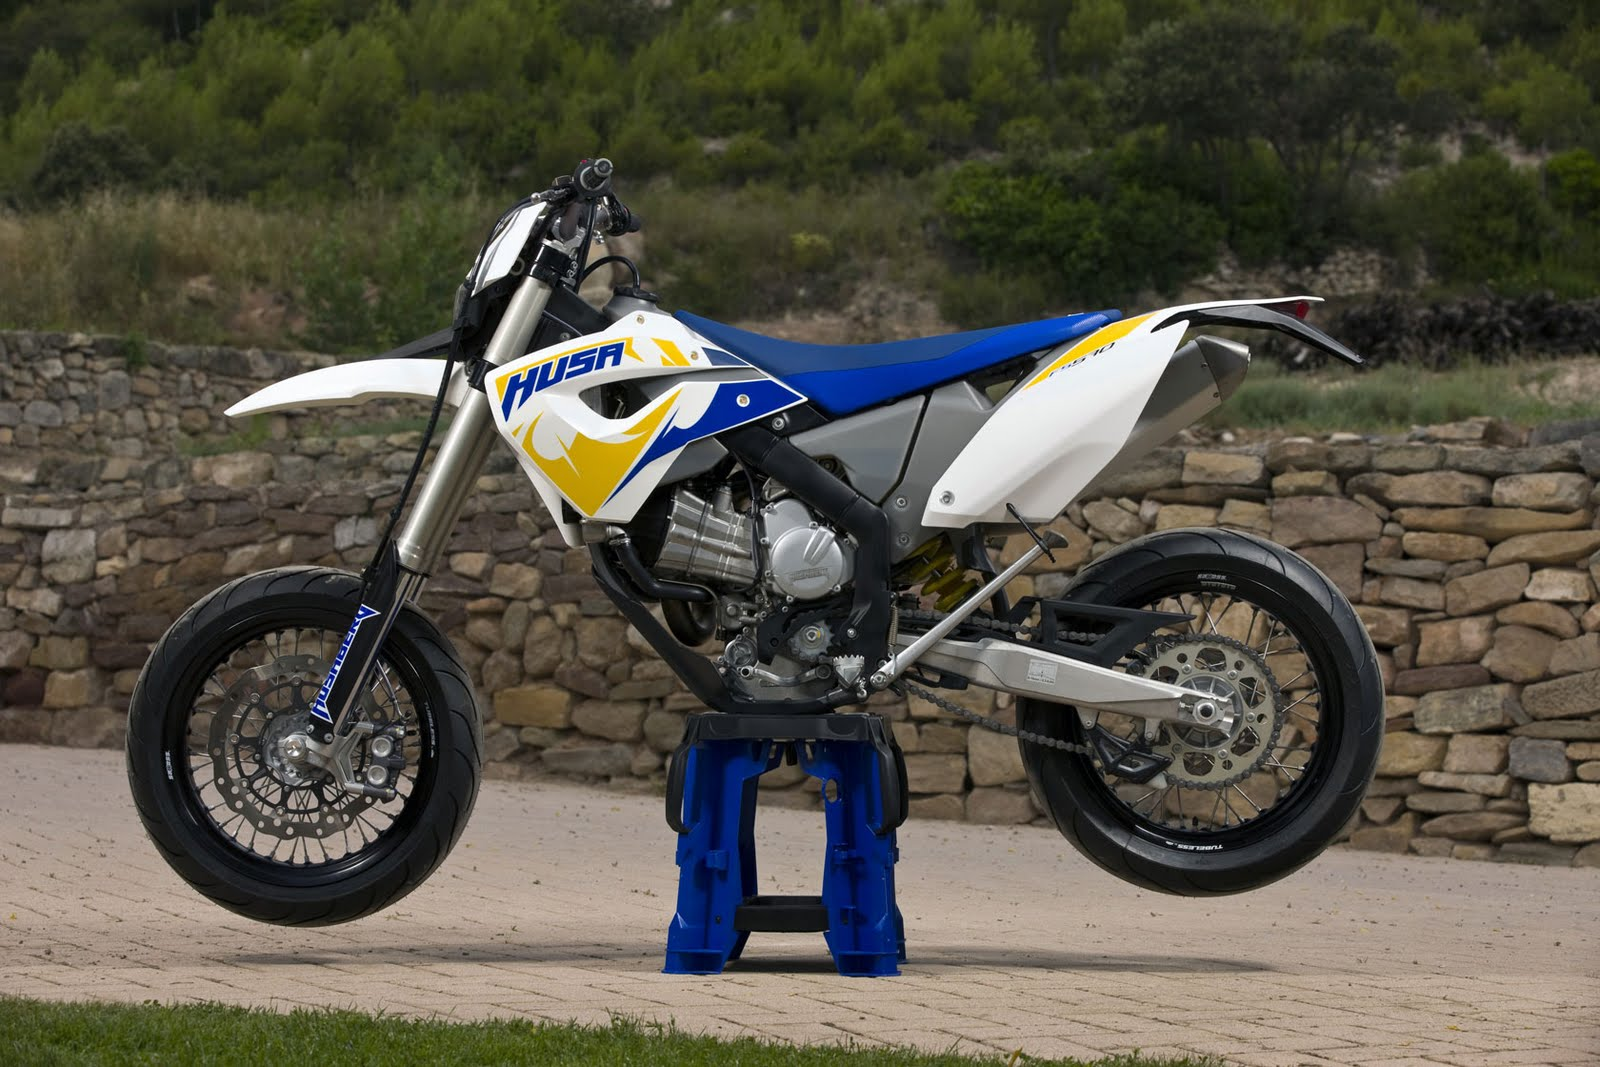 Motorcycle Pictures: Husaberg FS570 2011